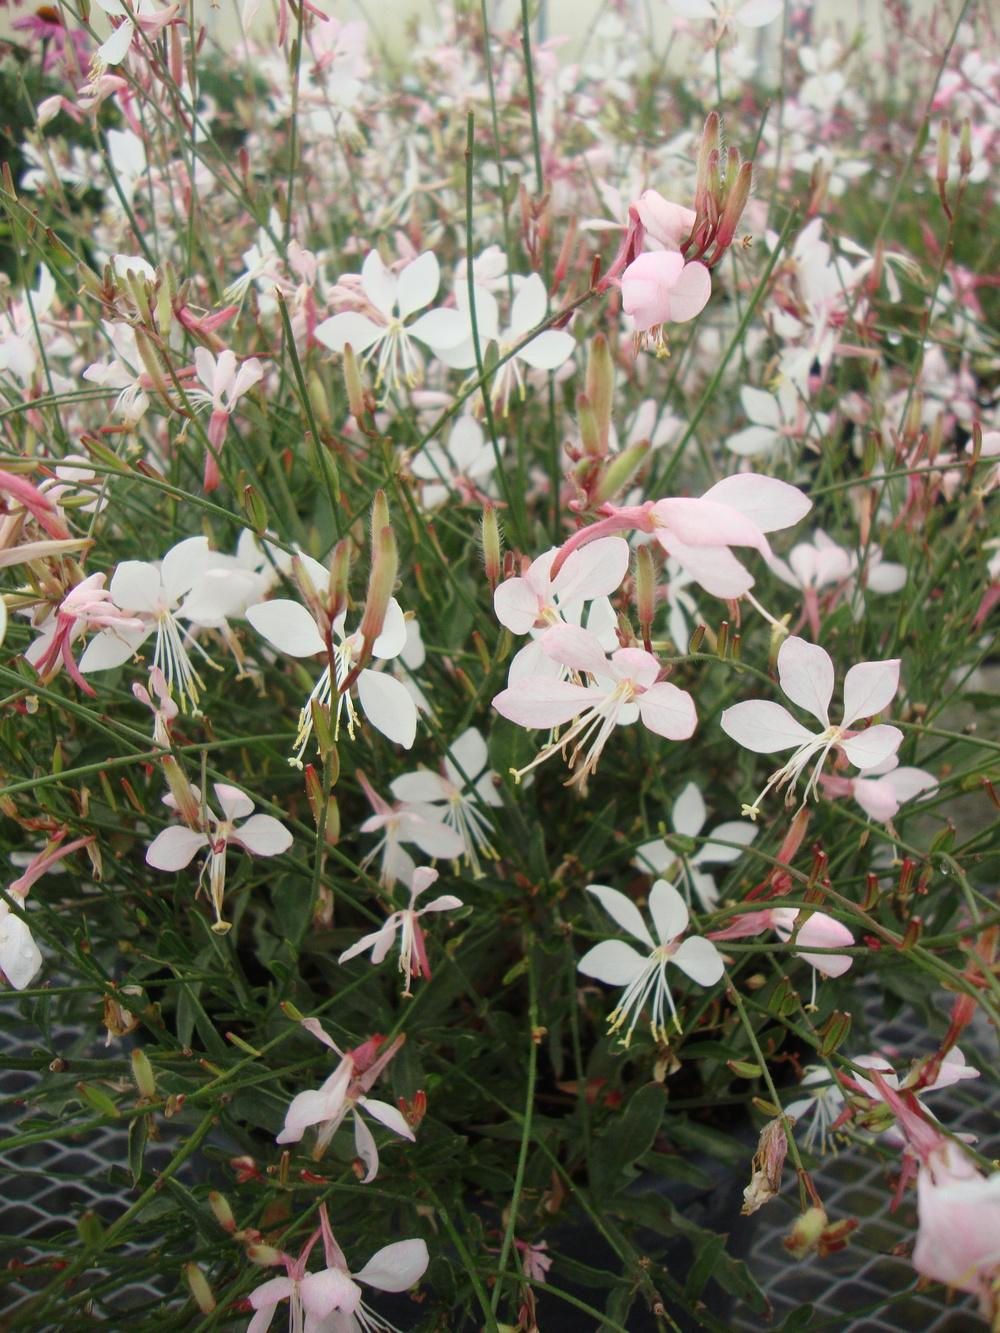 Photo of Appleblossom Grass (Oenothera lindheimeri Stratosphere™ White) uploaded by Paul2032